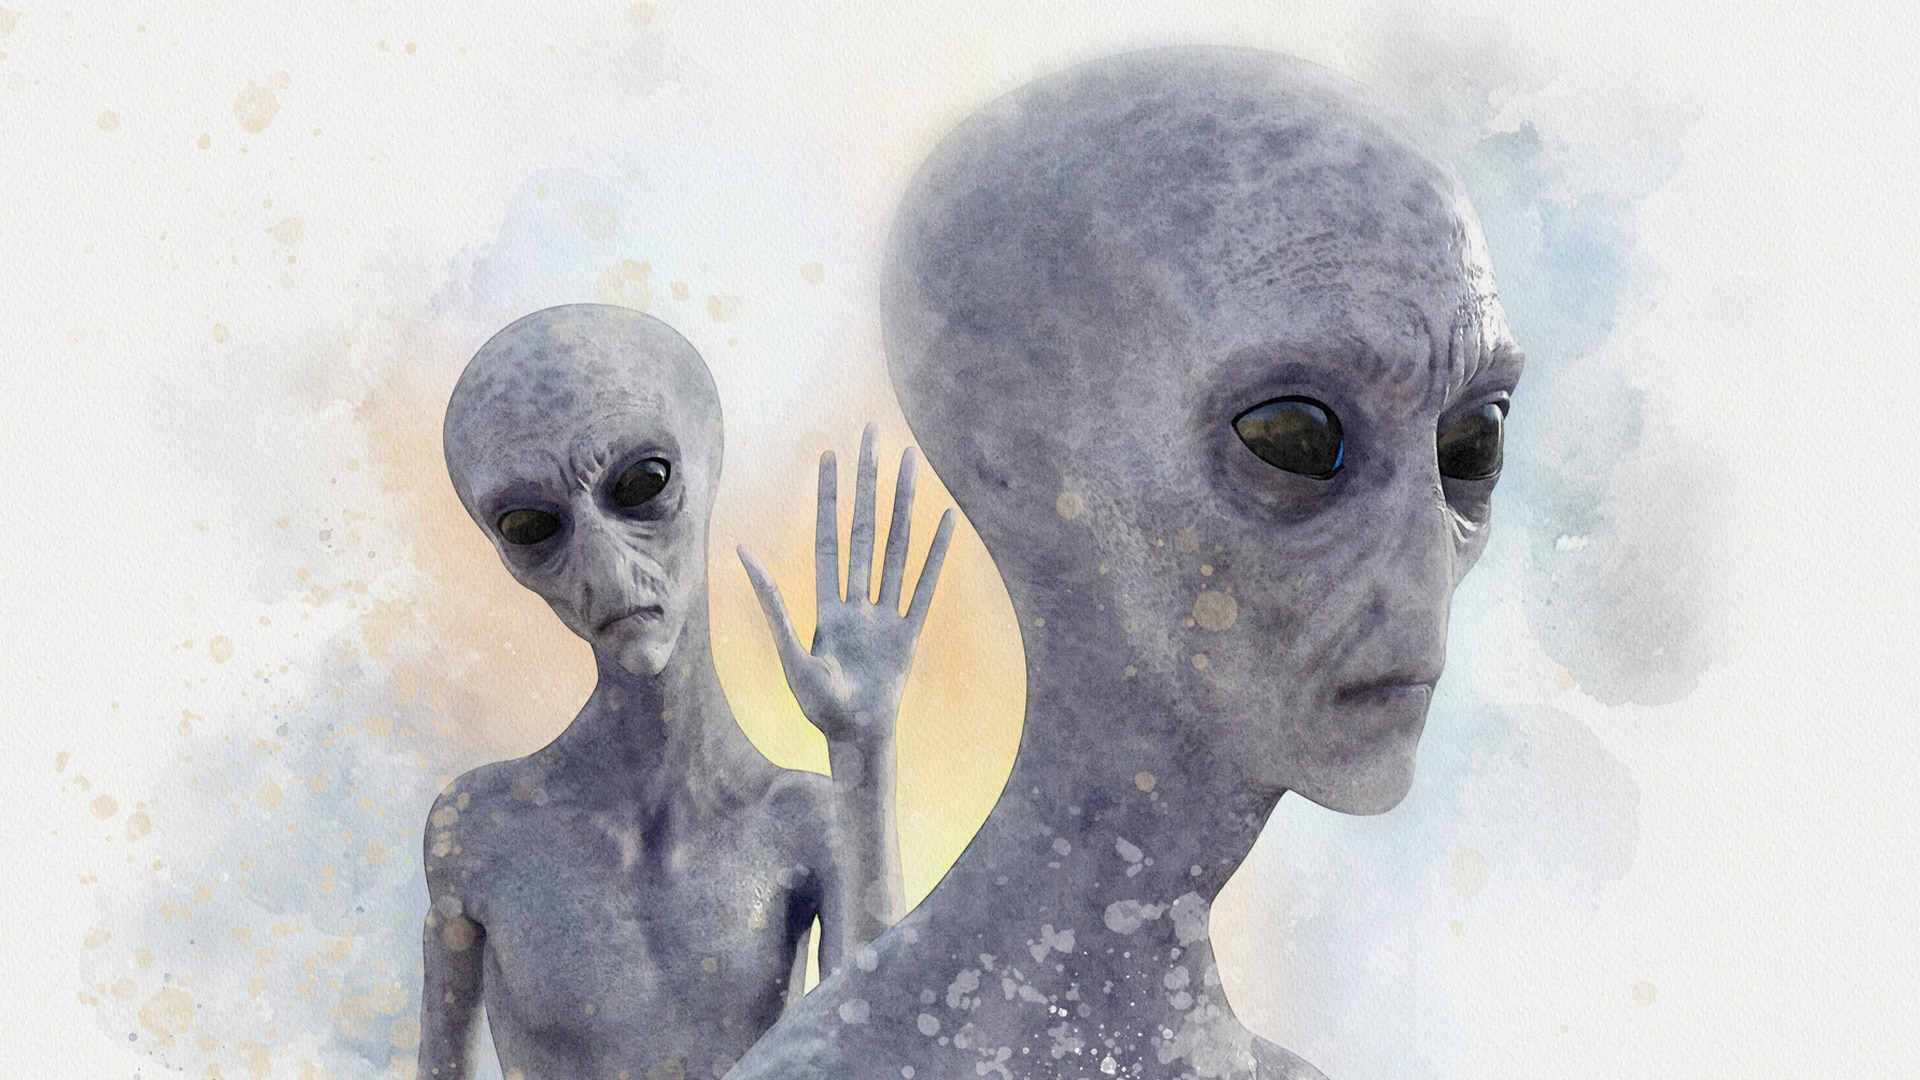 Illustration of two grey aliens